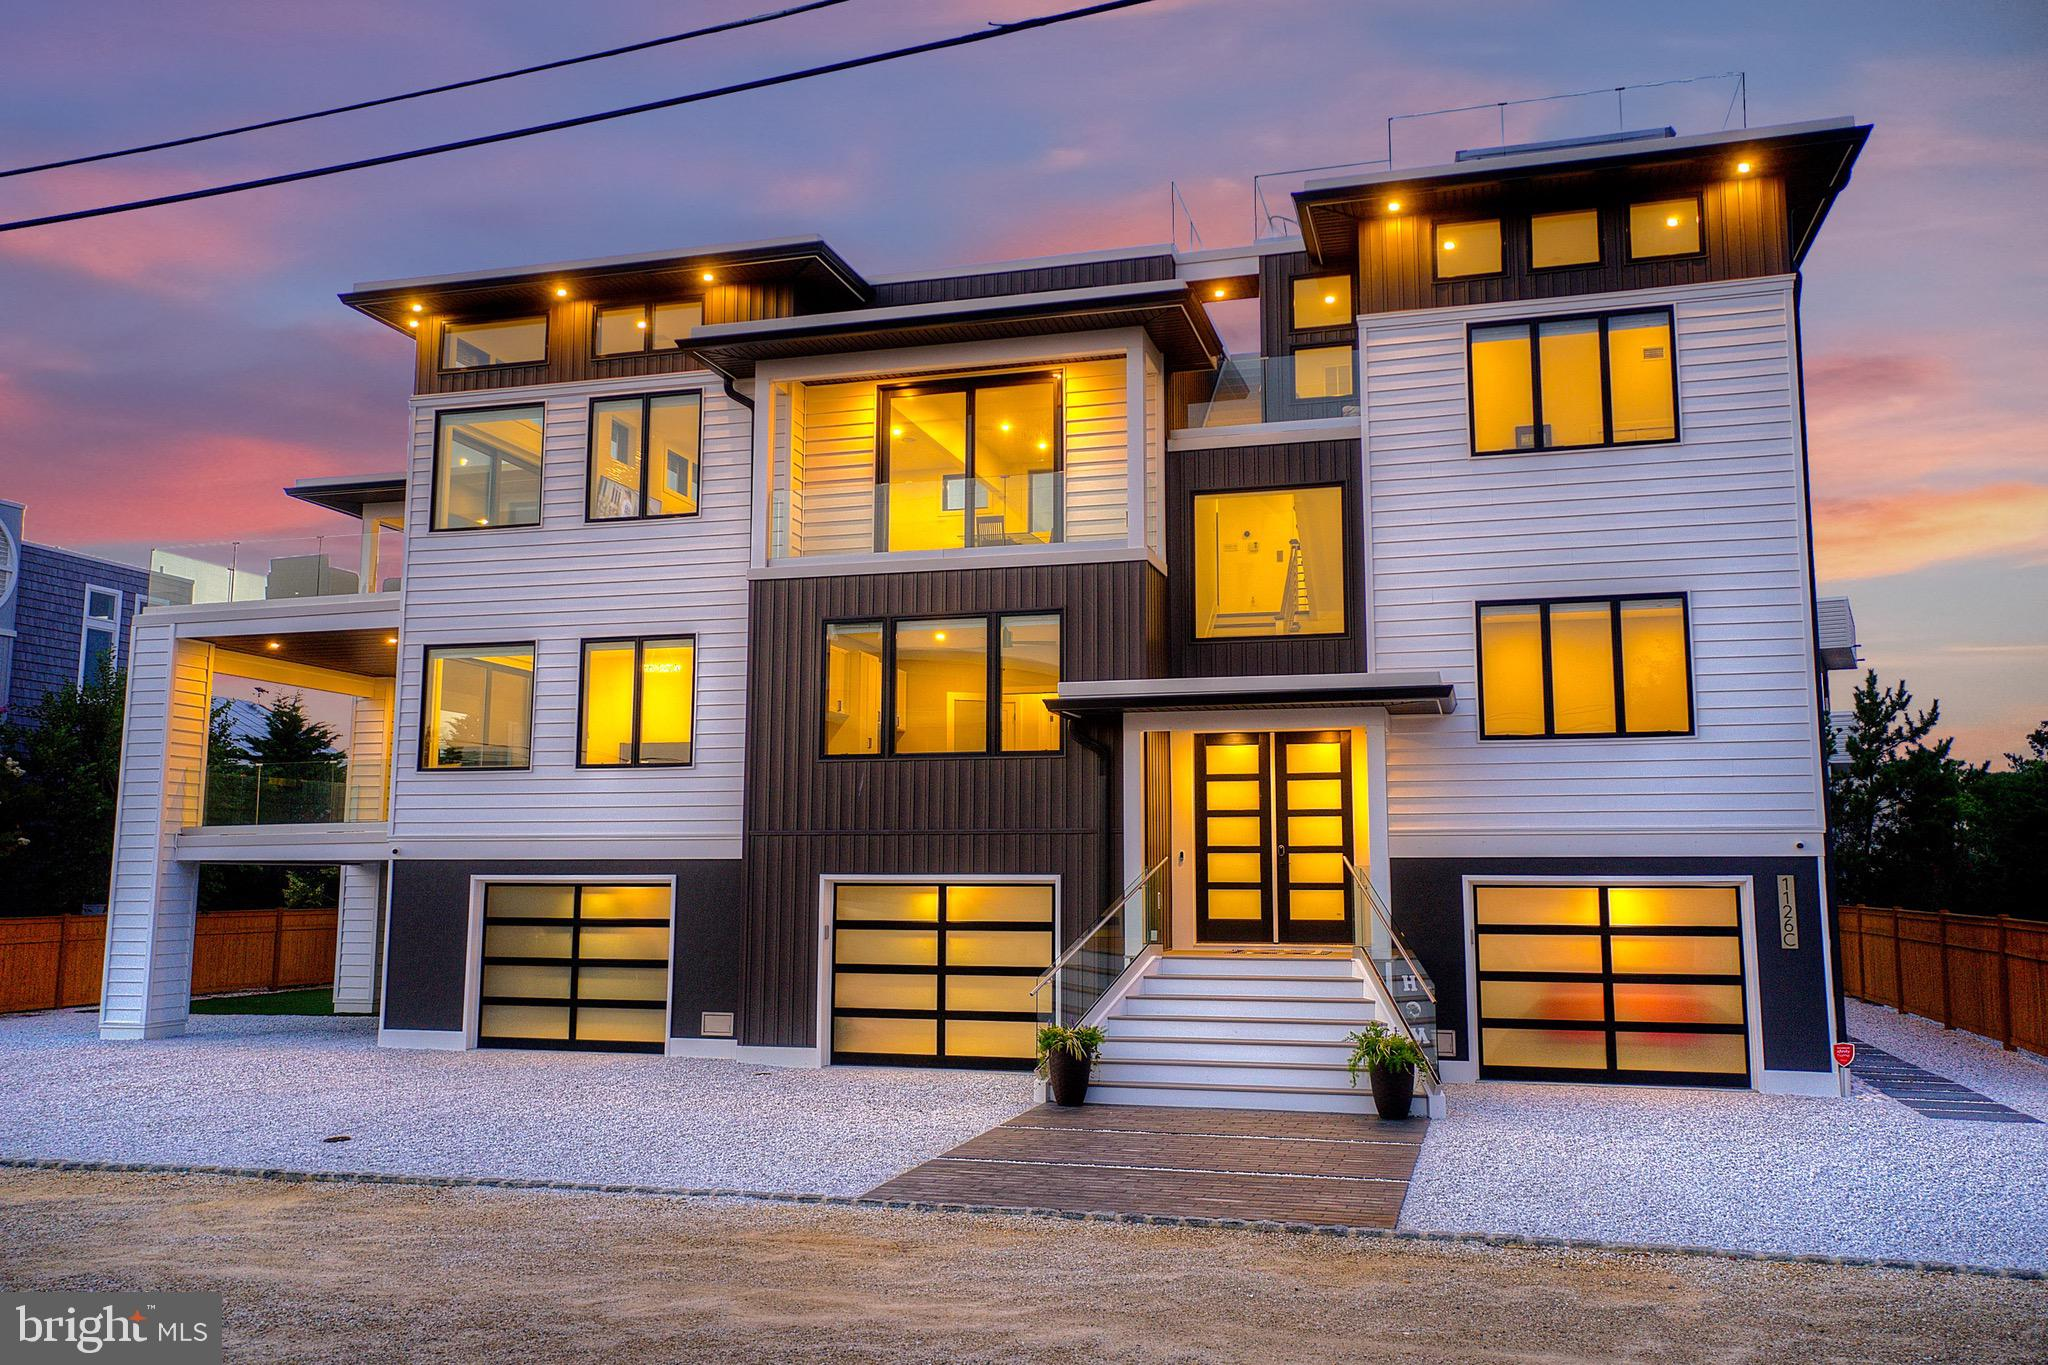 """*RARE FIND* Welcome to 1126-C Long Beach Boulevard! Some may say the """"C"""" stands for Custom. Nestled on a private lane in North Beach, this CUSTOM BUILT PREMIUM bay block home is just three homes to the bay and six homes to the pristine beaches of LBI. Perfect for year round living or a summer get away, this 2020 built home grasps panoramic bay views and partial ocean views. Enjoy beautiful sunsets and sunrises from almost any point of this gorgeous home, including the rooftop deck equipped with a built-in swim spa and illuminated custom glass railings. The three stop elevator makes reverse living a breeze. The first floor features three spacious bedrooms, two full bathrooms, a family room and a luxurious master suite equipped with bay views, a private balcony, a double walk in closet and master bathroom. The master bathroom features floor to ceiling custom tile, double frameless shower doors, double vessel sinks and in floor electric heat. The second floor showcases open concept living boasting 30x30 ceramic tile flooring, 12 foot ceilings with clerestory windows, a gourmet kitchen (with high end stainless steel appliances, dazzling Quartz countertops and tile backsplash,) a fifth sizable bedroom, a full bathroom, a dining room equipped with a wet bar (offering a second dishwasher and beverage fridge,) a living room featuring a cozy 60"""" Linear fireplace and 655 square feet of deck space. Other special features include power shade window treatments on the second floor, two tankless water heaters for maximum efficiency, a three car garage (with custom glass doors, accent lighting and epoxy floors inside,) a climate controlled gym on the ground level, 1,500 square feet of total useable deck space, a sound system throughout, a whole house Kohler natural gas generator, a turf side yard, recessed lighting, double outdoor showers and deeded Ocean access. Come enjoy all Long Beach Island has to offer at your very own Jersey Shore oasis."""